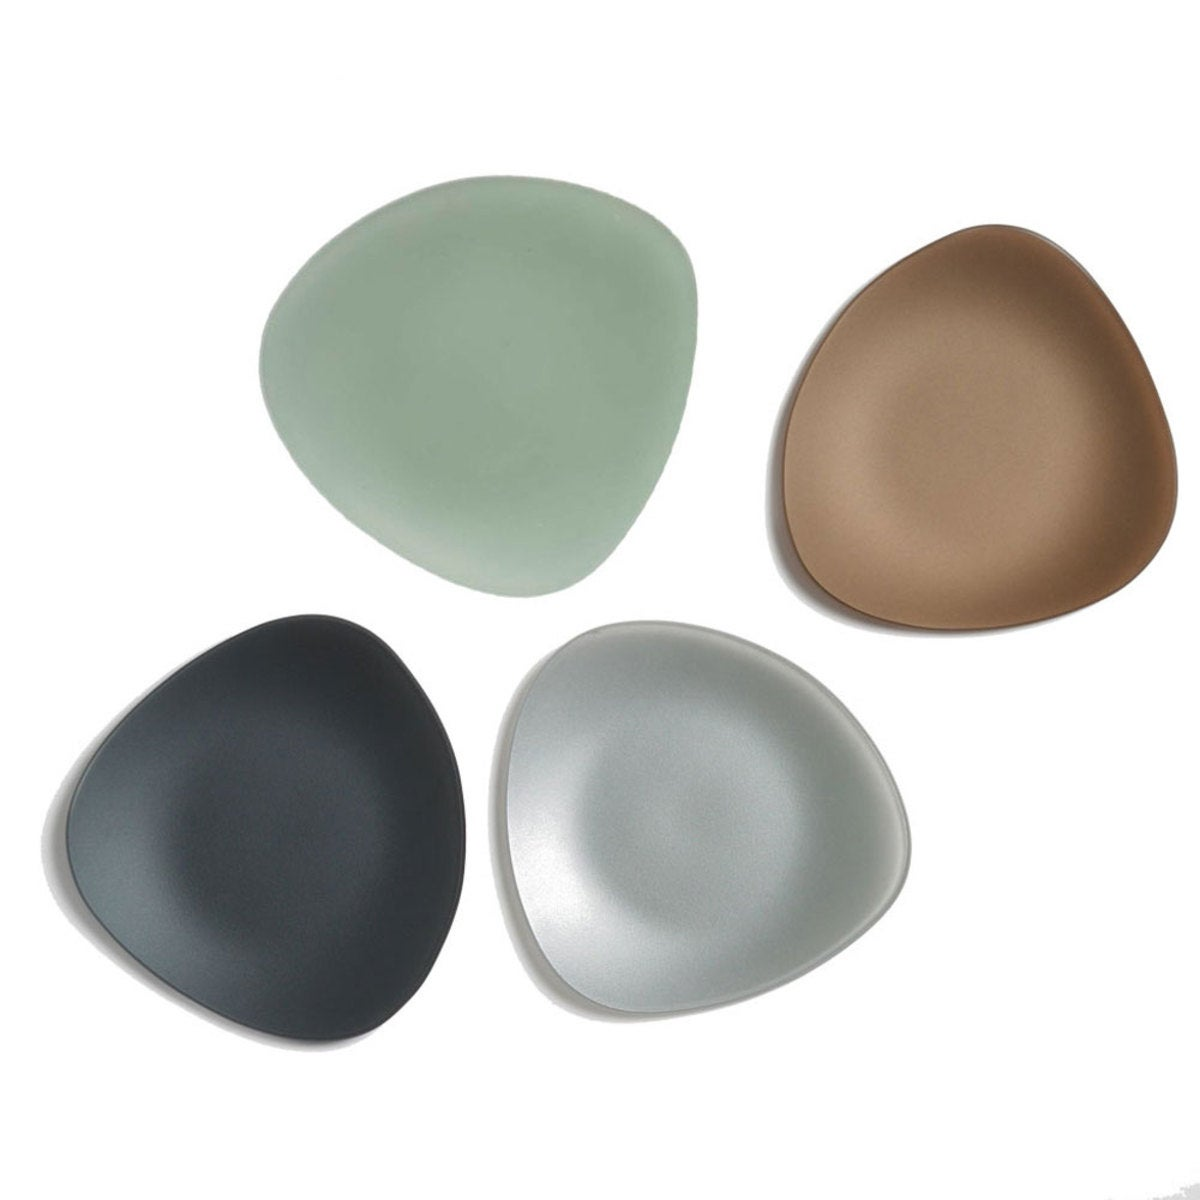 "SeaGlass Triangle Plates, 7"" - Set of 4 - Gray"